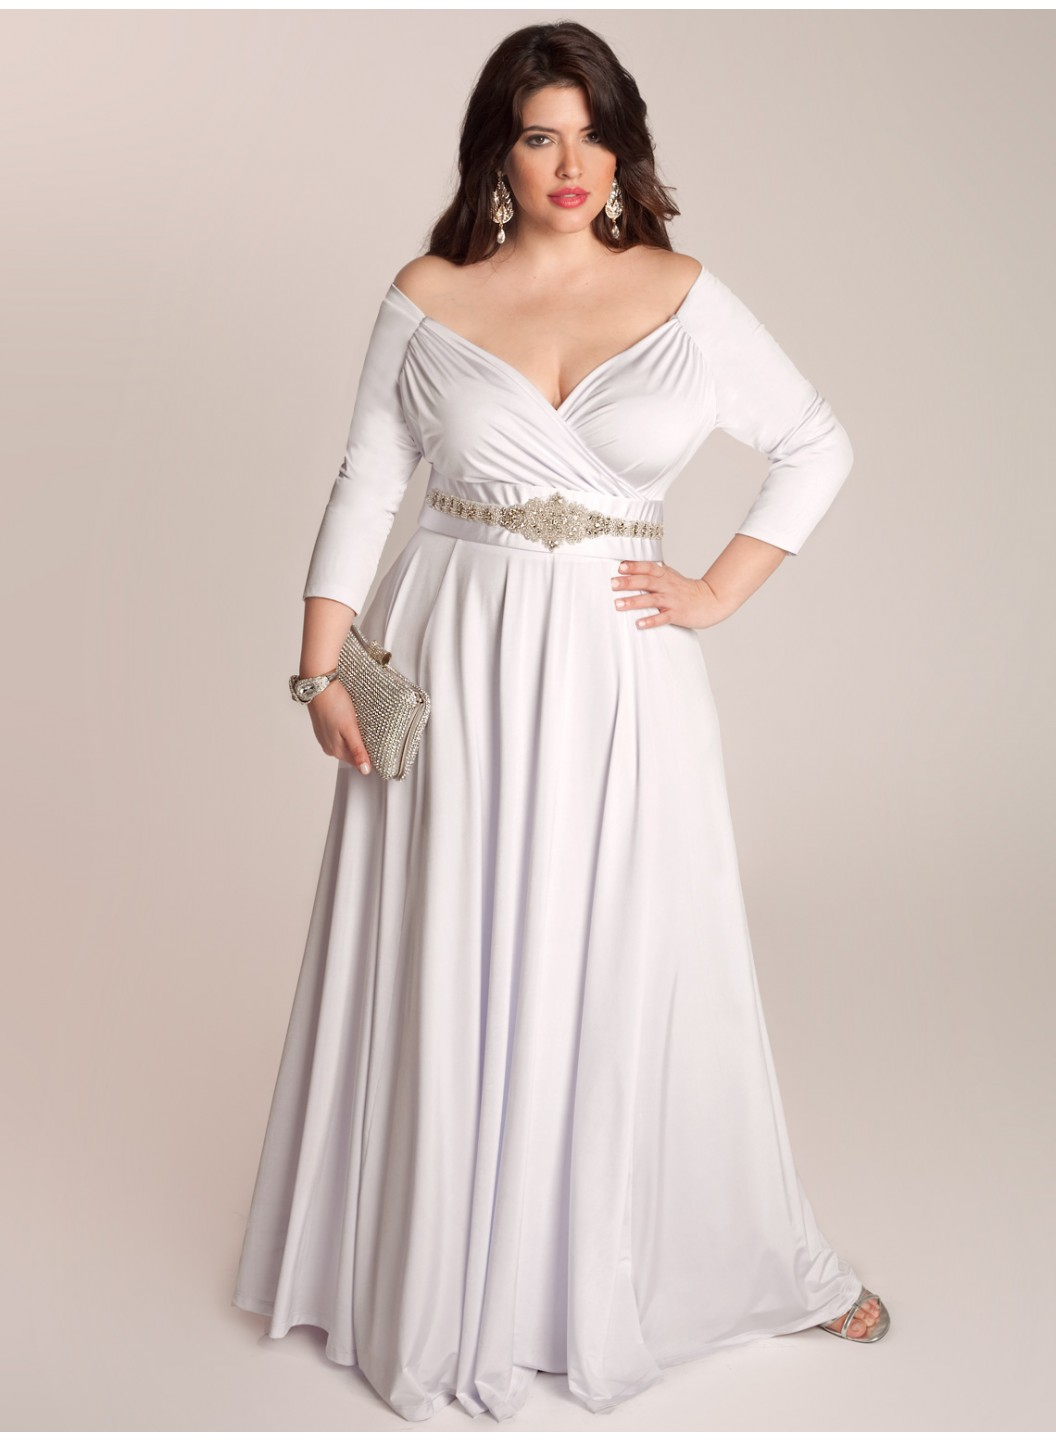 Top 10 Plus Size Wedding Dress Designers By Pretty Pear Bride,Pink Dresses For Weddings